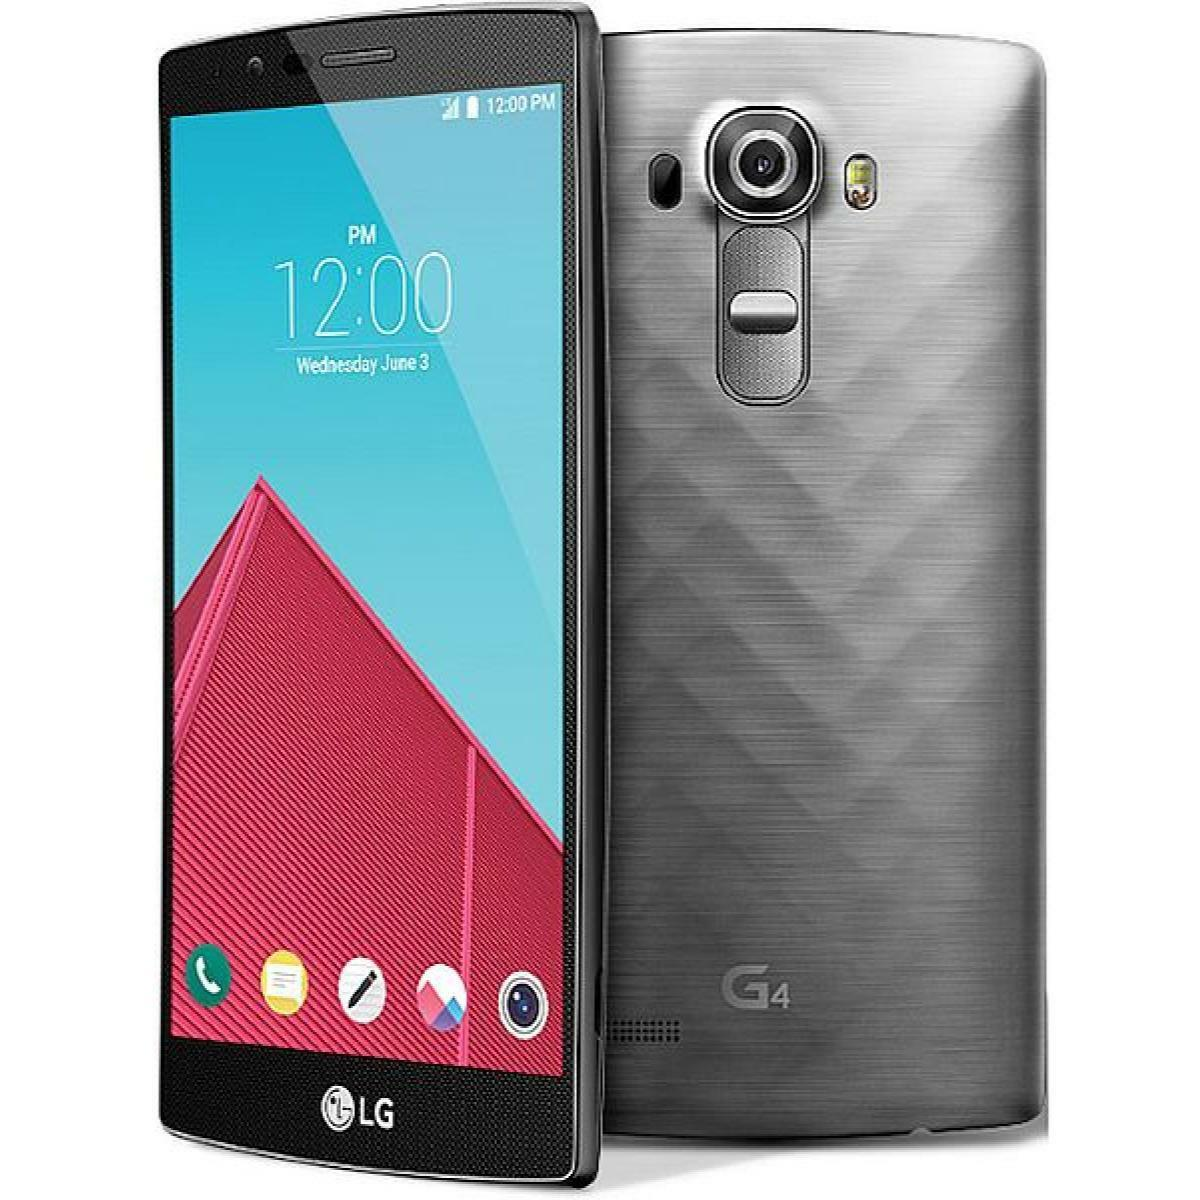 Android Phone - LG G4 - VS986 - 32GB - Gray - (Verizon + GSM Unlocked AT&T, T-Mobile) Smartphone